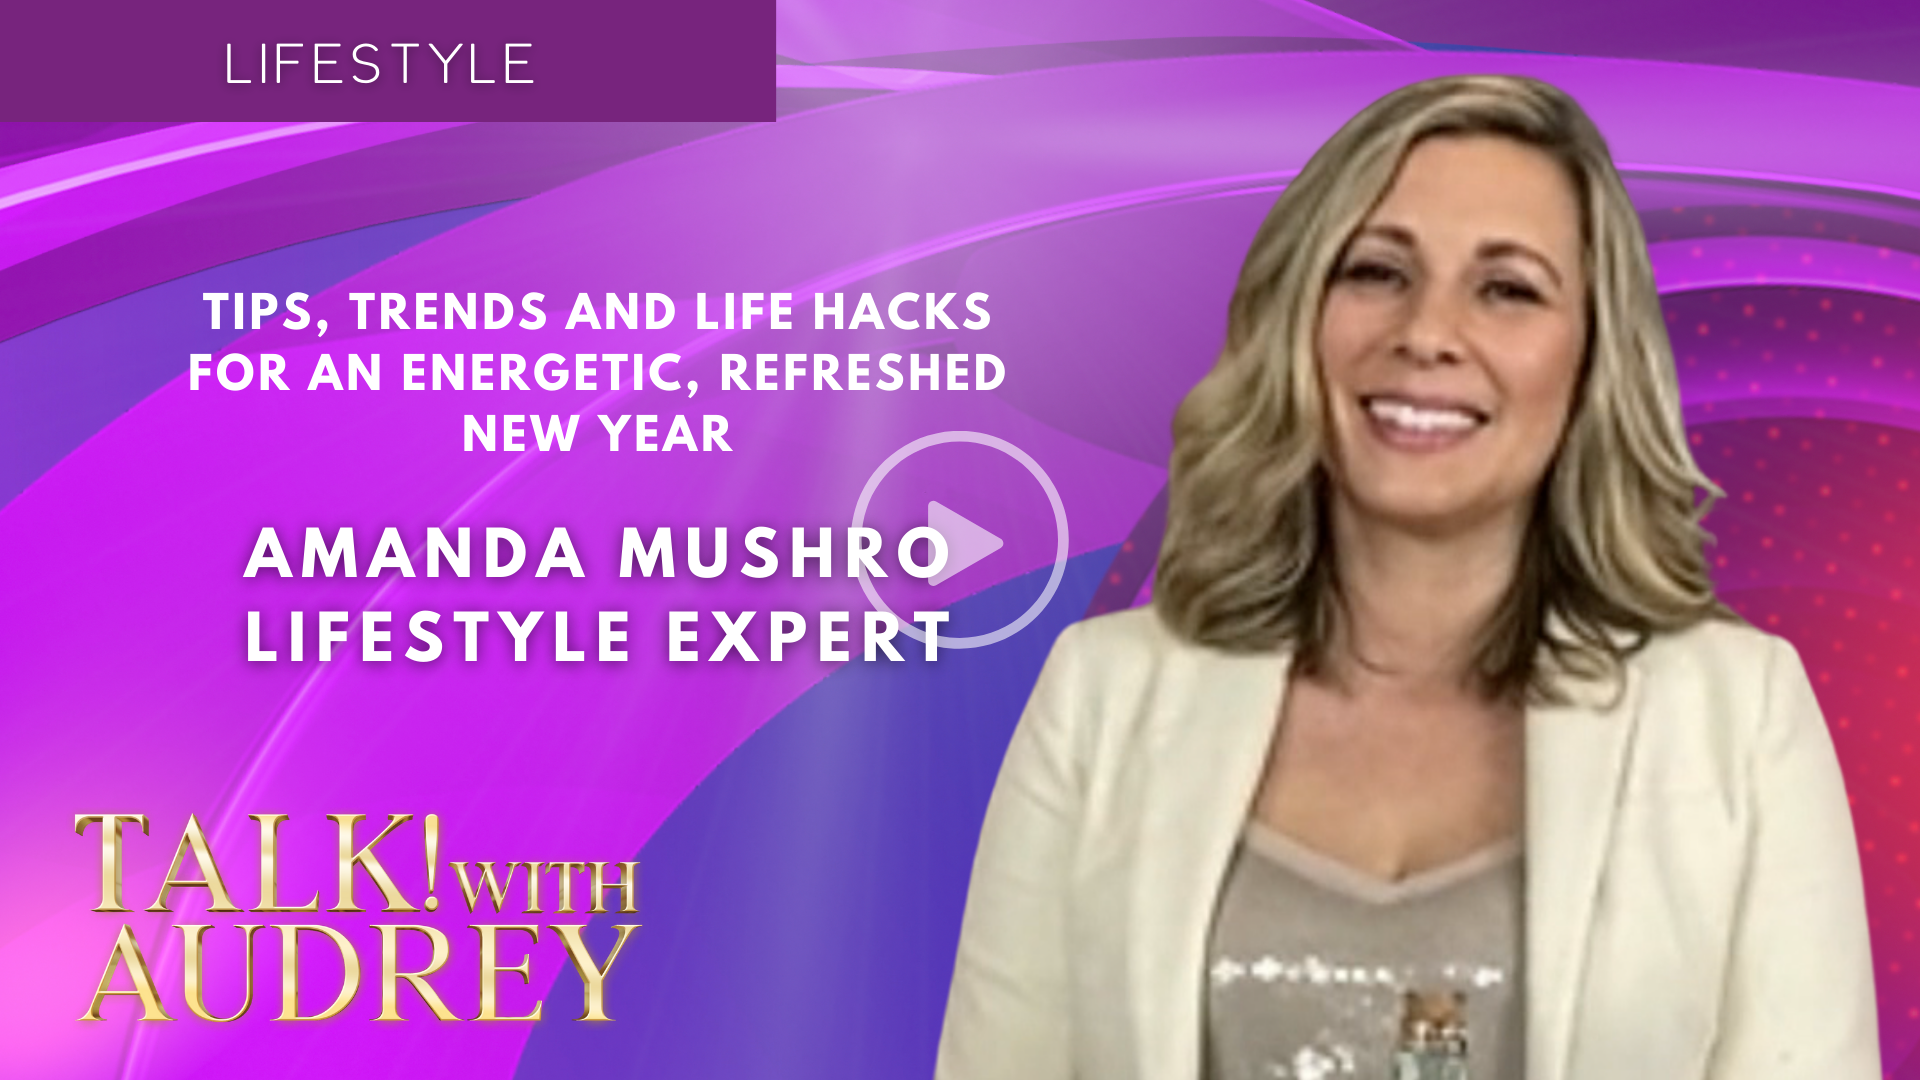 Amanda Mushro – Tips, Trends and Life Hacks for an Energetic, Refreshed New Year